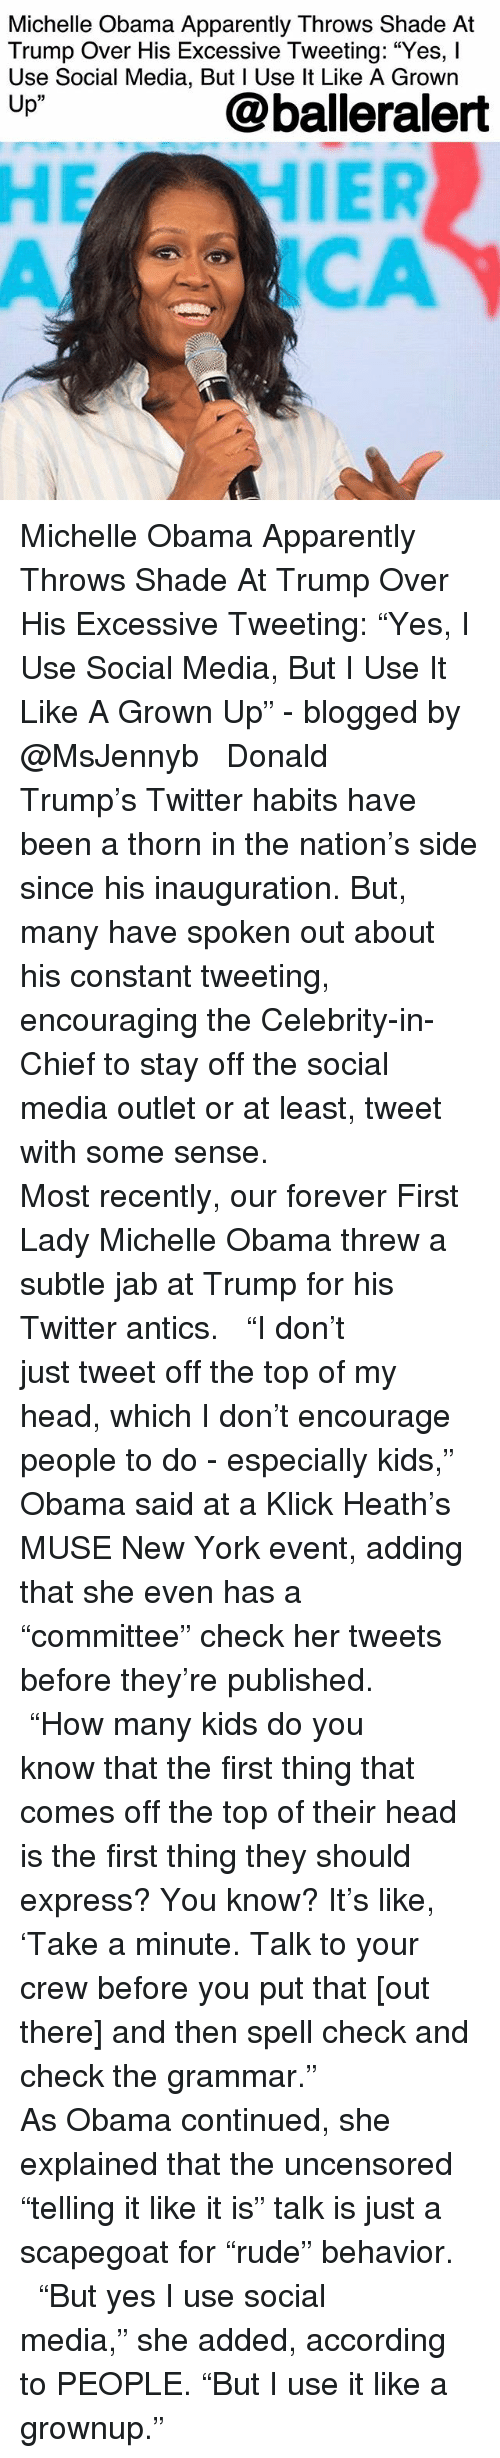 "jab: Michelle Obama Apparently Throws Shade At  Trump Over His Excessive Tweeting: ""Yes, l  Use Social Media, But l Use lt Like A Grown  Up""  @balleralert  05  CA Michelle Obama Apparently Throws Shade At Trump Over His Excessive Tweeting: ""Yes, I Use Social Media, But I Use It Like A Grown Up"" - blogged by @MsJennyb ⠀⠀⠀⠀⠀⠀⠀ ⠀⠀⠀⠀⠀⠀⠀ Donald Trump's Twitter habits have been a thorn in the nation's side since his inauguration. But, many have spoken out about his constant tweeting, encouraging the Celebrity-in-Chief to stay off the social media outlet or at least, tweet with some sense. ⠀⠀⠀⠀⠀⠀⠀ ⠀⠀⠀⠀⠀⠀⠀ Most recently, our forever First Lady Michelle Obama threw a subtle jab at Trump for his Twitter antics. ⠀⠀⠀⠀⠀⠀⠀ ⠀⠀⠀⠀⠀⠀⠀ ""I don't just tweet off the top of my head, which I don't encourage people to do - especially kids,"" Obama said at a Klick Heath's MUSE New York event, adding that she even has a ""committee"" check her tweets before they're published. ⠀⠀⠀⠀⠀⠀⠀ ⠀⠀⠀⠀⠀⠀⠀ ""How many kids do you know that the first thing that comes off the top of their head is the first thing they should express? You know? It's like, 'Take a minute. Talk to your crew before you put that [out there] and then spell check and check the grammar."" ⠀⠀⠀⠀⠀⠀⠀ ⠀⠀⠀⠀⠀⠀⠀ As Obama continued, she explained that the uncensored ""telling it like it is"" talk is just a scapegoat for ""rude"" behavior. ⠀⠀⠀⠀⠀⠀⠀ ⠀⠀⠀⠀⠀⠀⠀ ""But yes I use social media,"" she added, according to PEOPLE. ""But I use it like a grownup."""